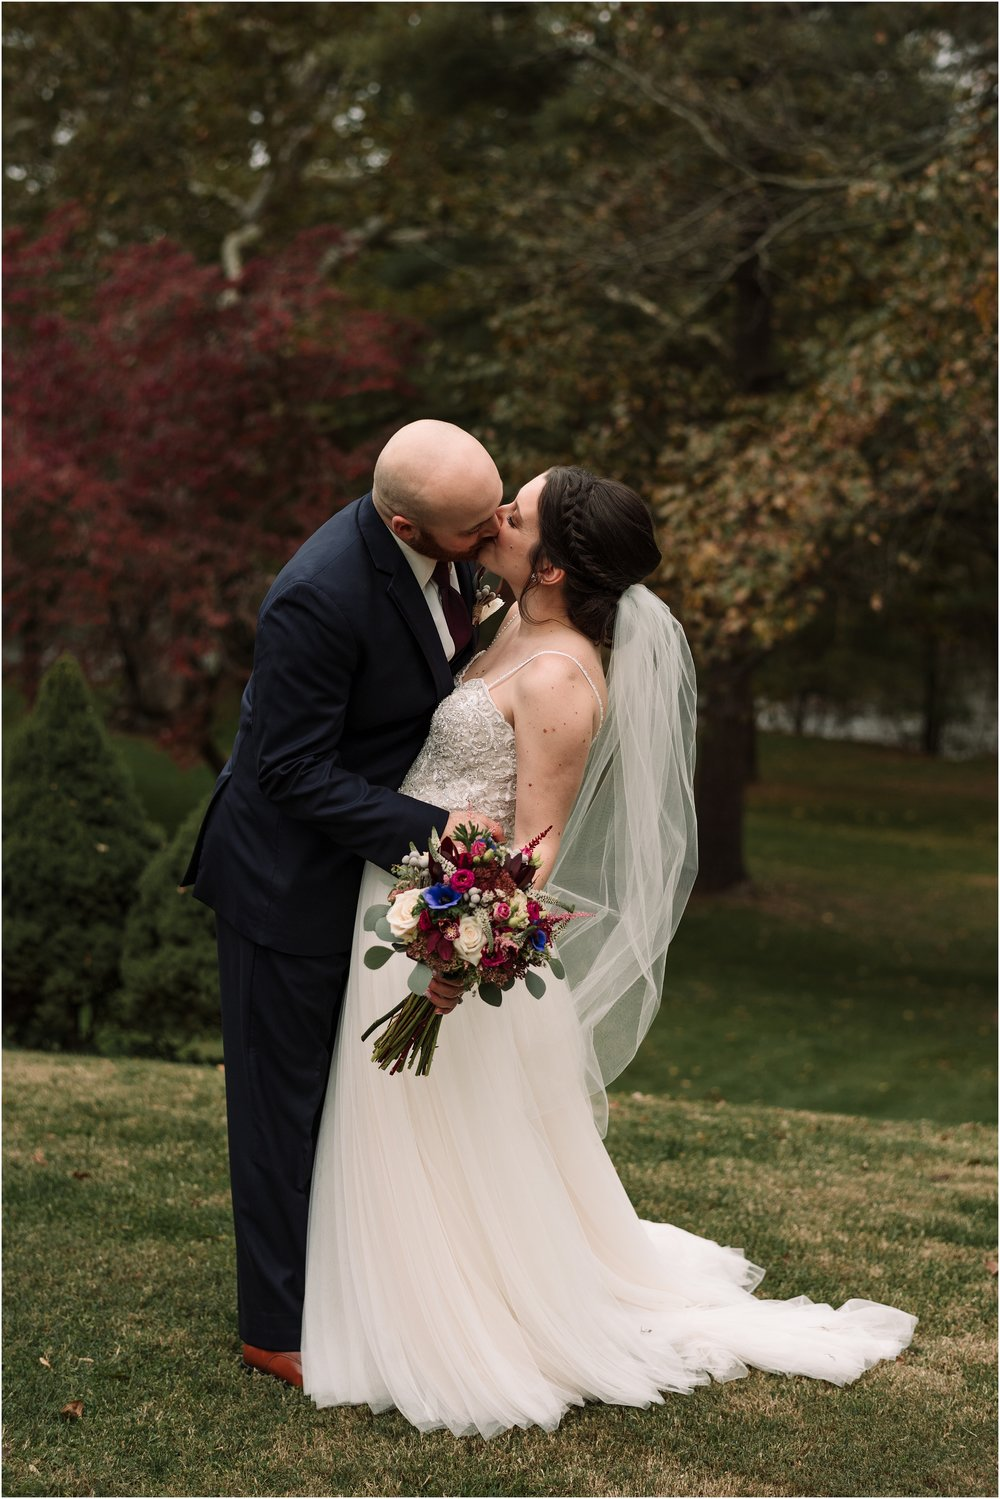 hannah leigh photography riverdale manor wedding lancaster pa_2023.jpg